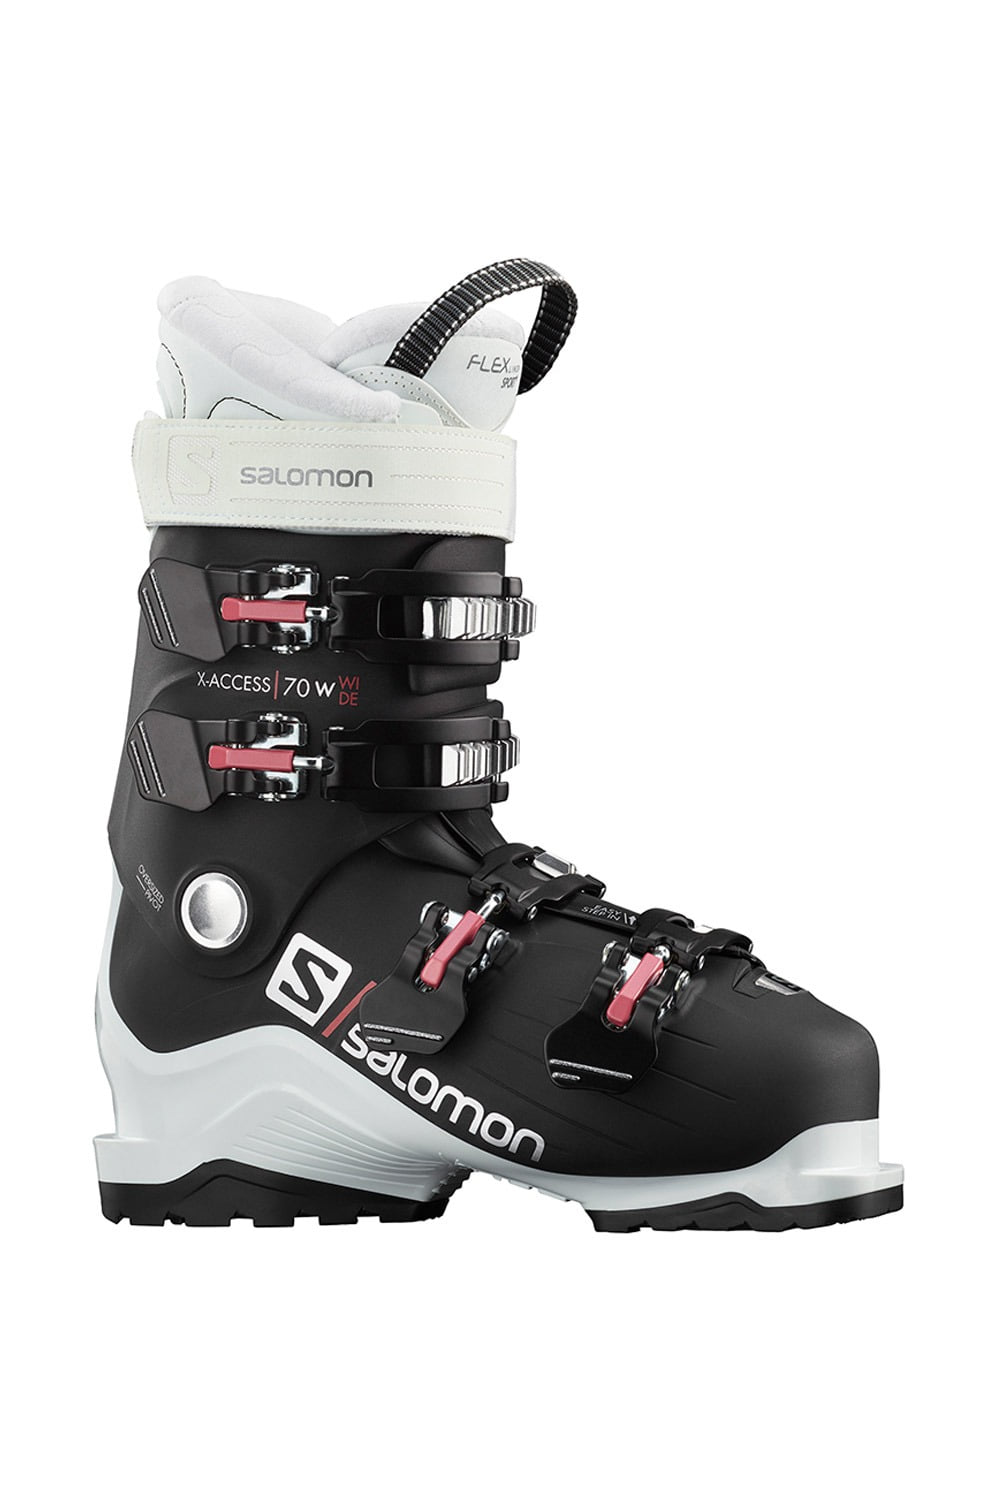 1920 살로몬 여성 스키 부츠 X 액세스 70 W 와이드 SALOMON(L40851000)WMS X ACCESS 70 W WIDE_WHITE/BLACK_B6SA917WB